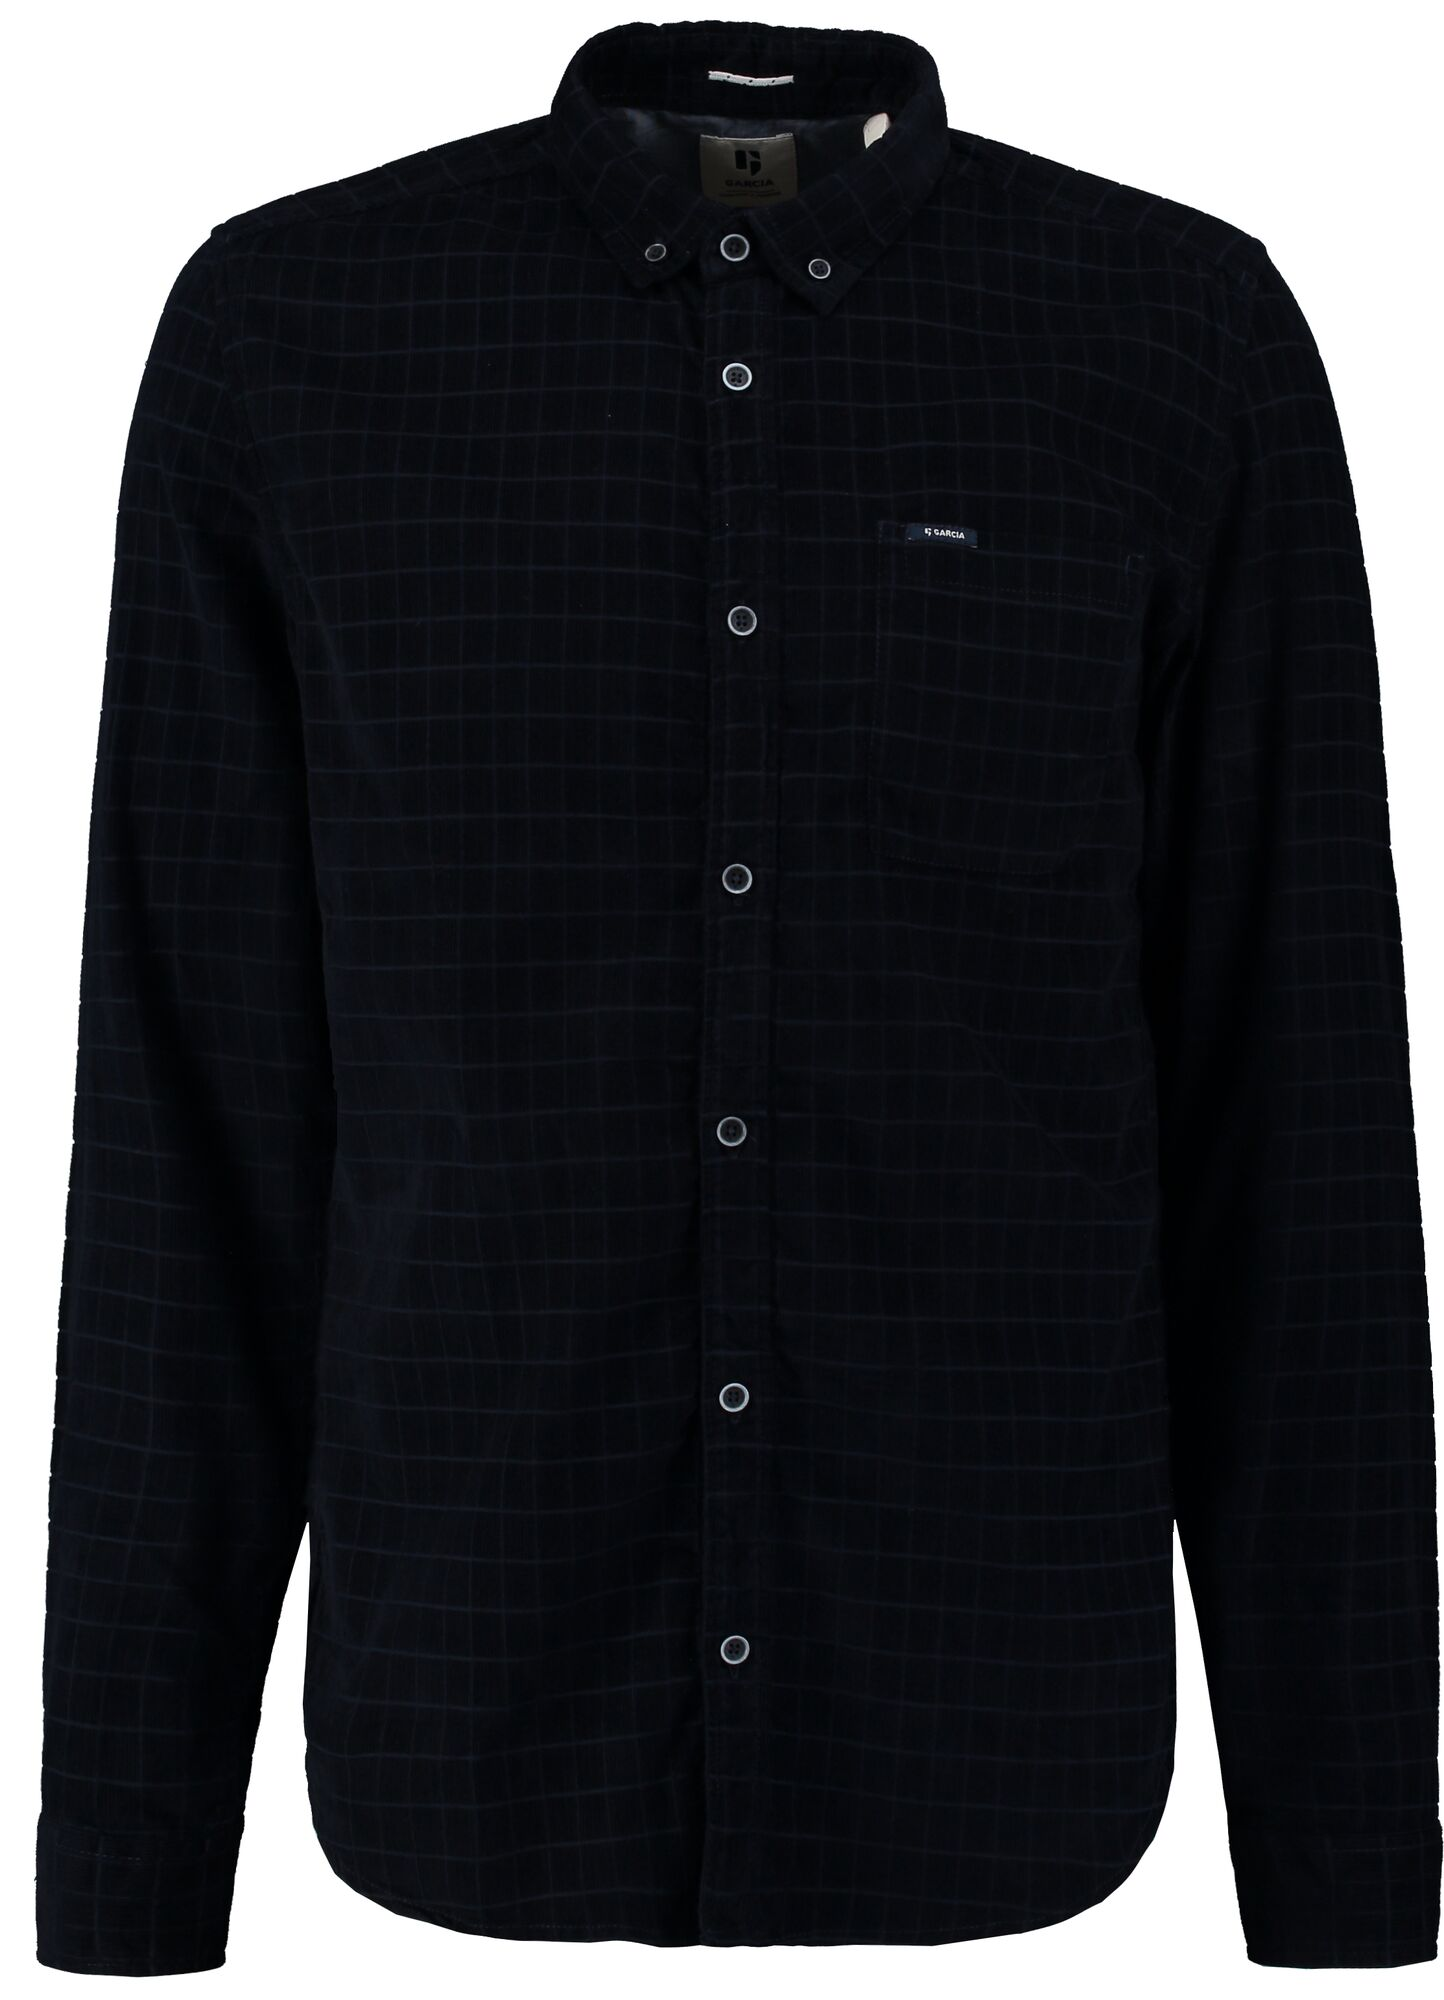 Garcia men's navy velour shirt U01034